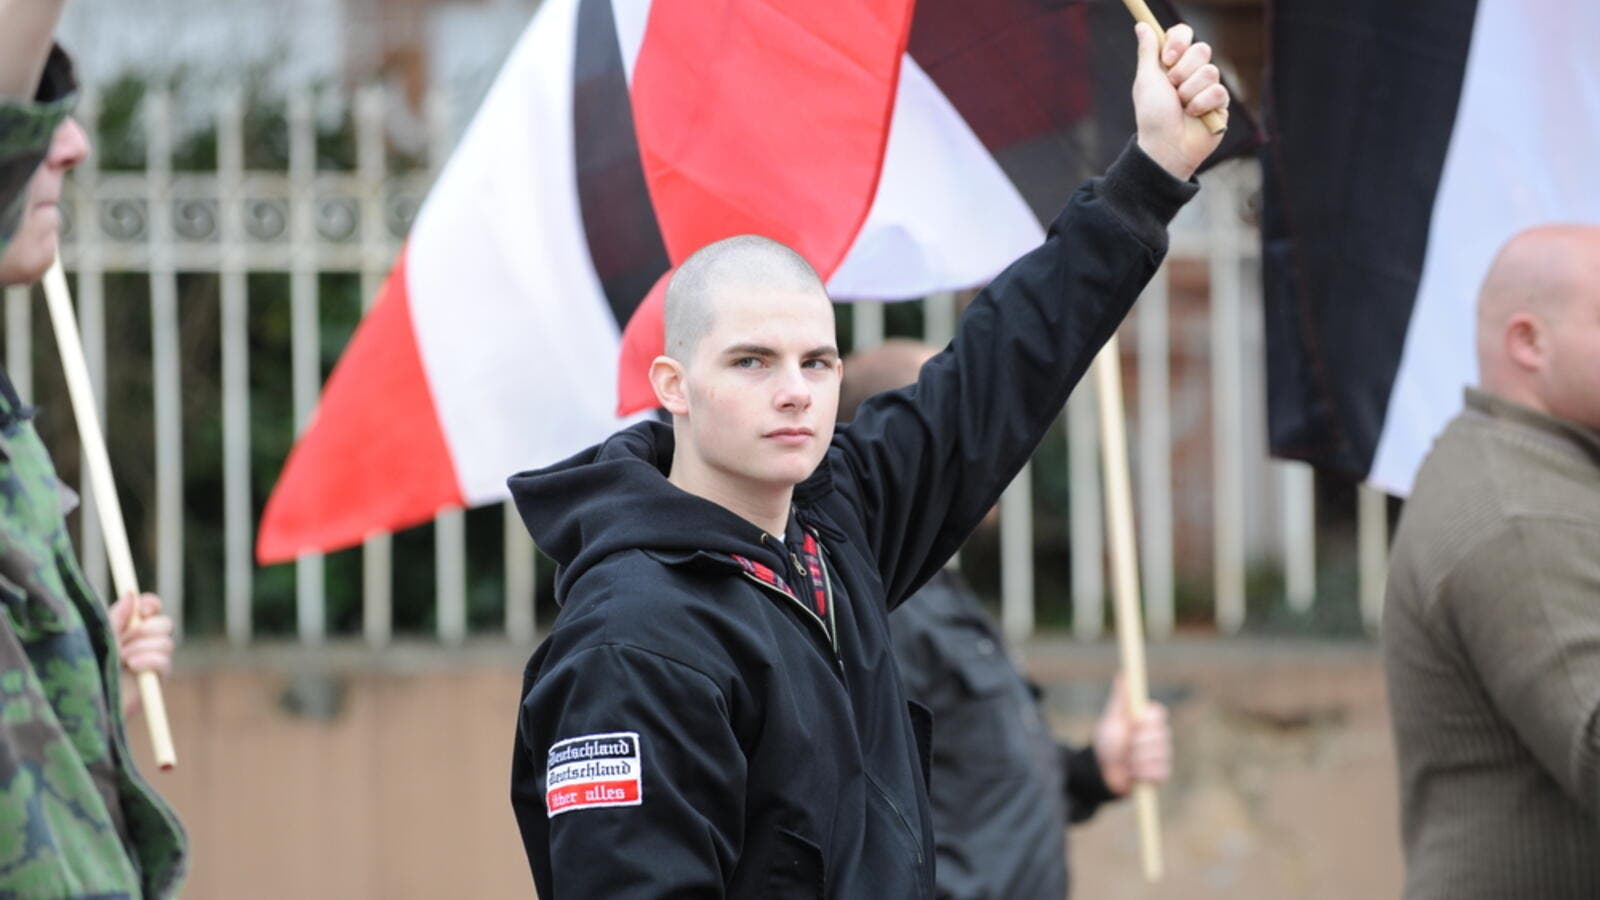 Protests against Neo Nazis and right wing extremists demonstrating (Shutterstock/File Photo)